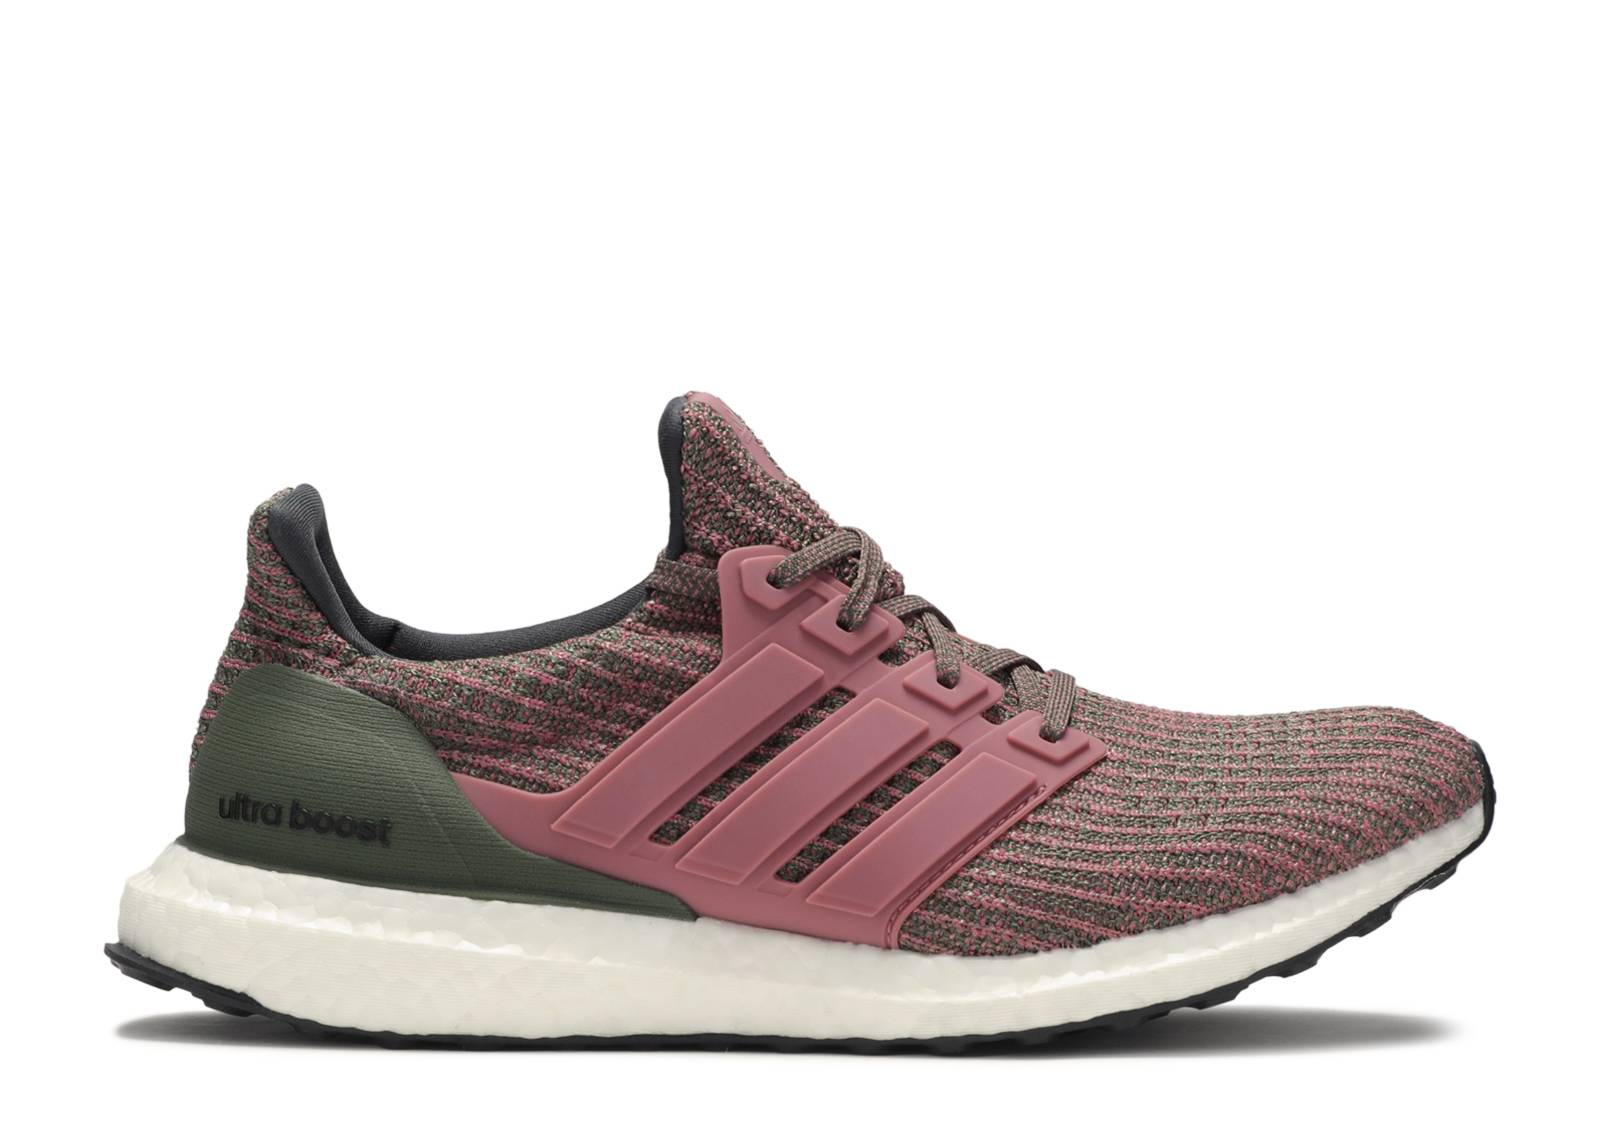 separation shoes 9db08 4880a Wmns UltraBoost 4.0 'Pink Olive'